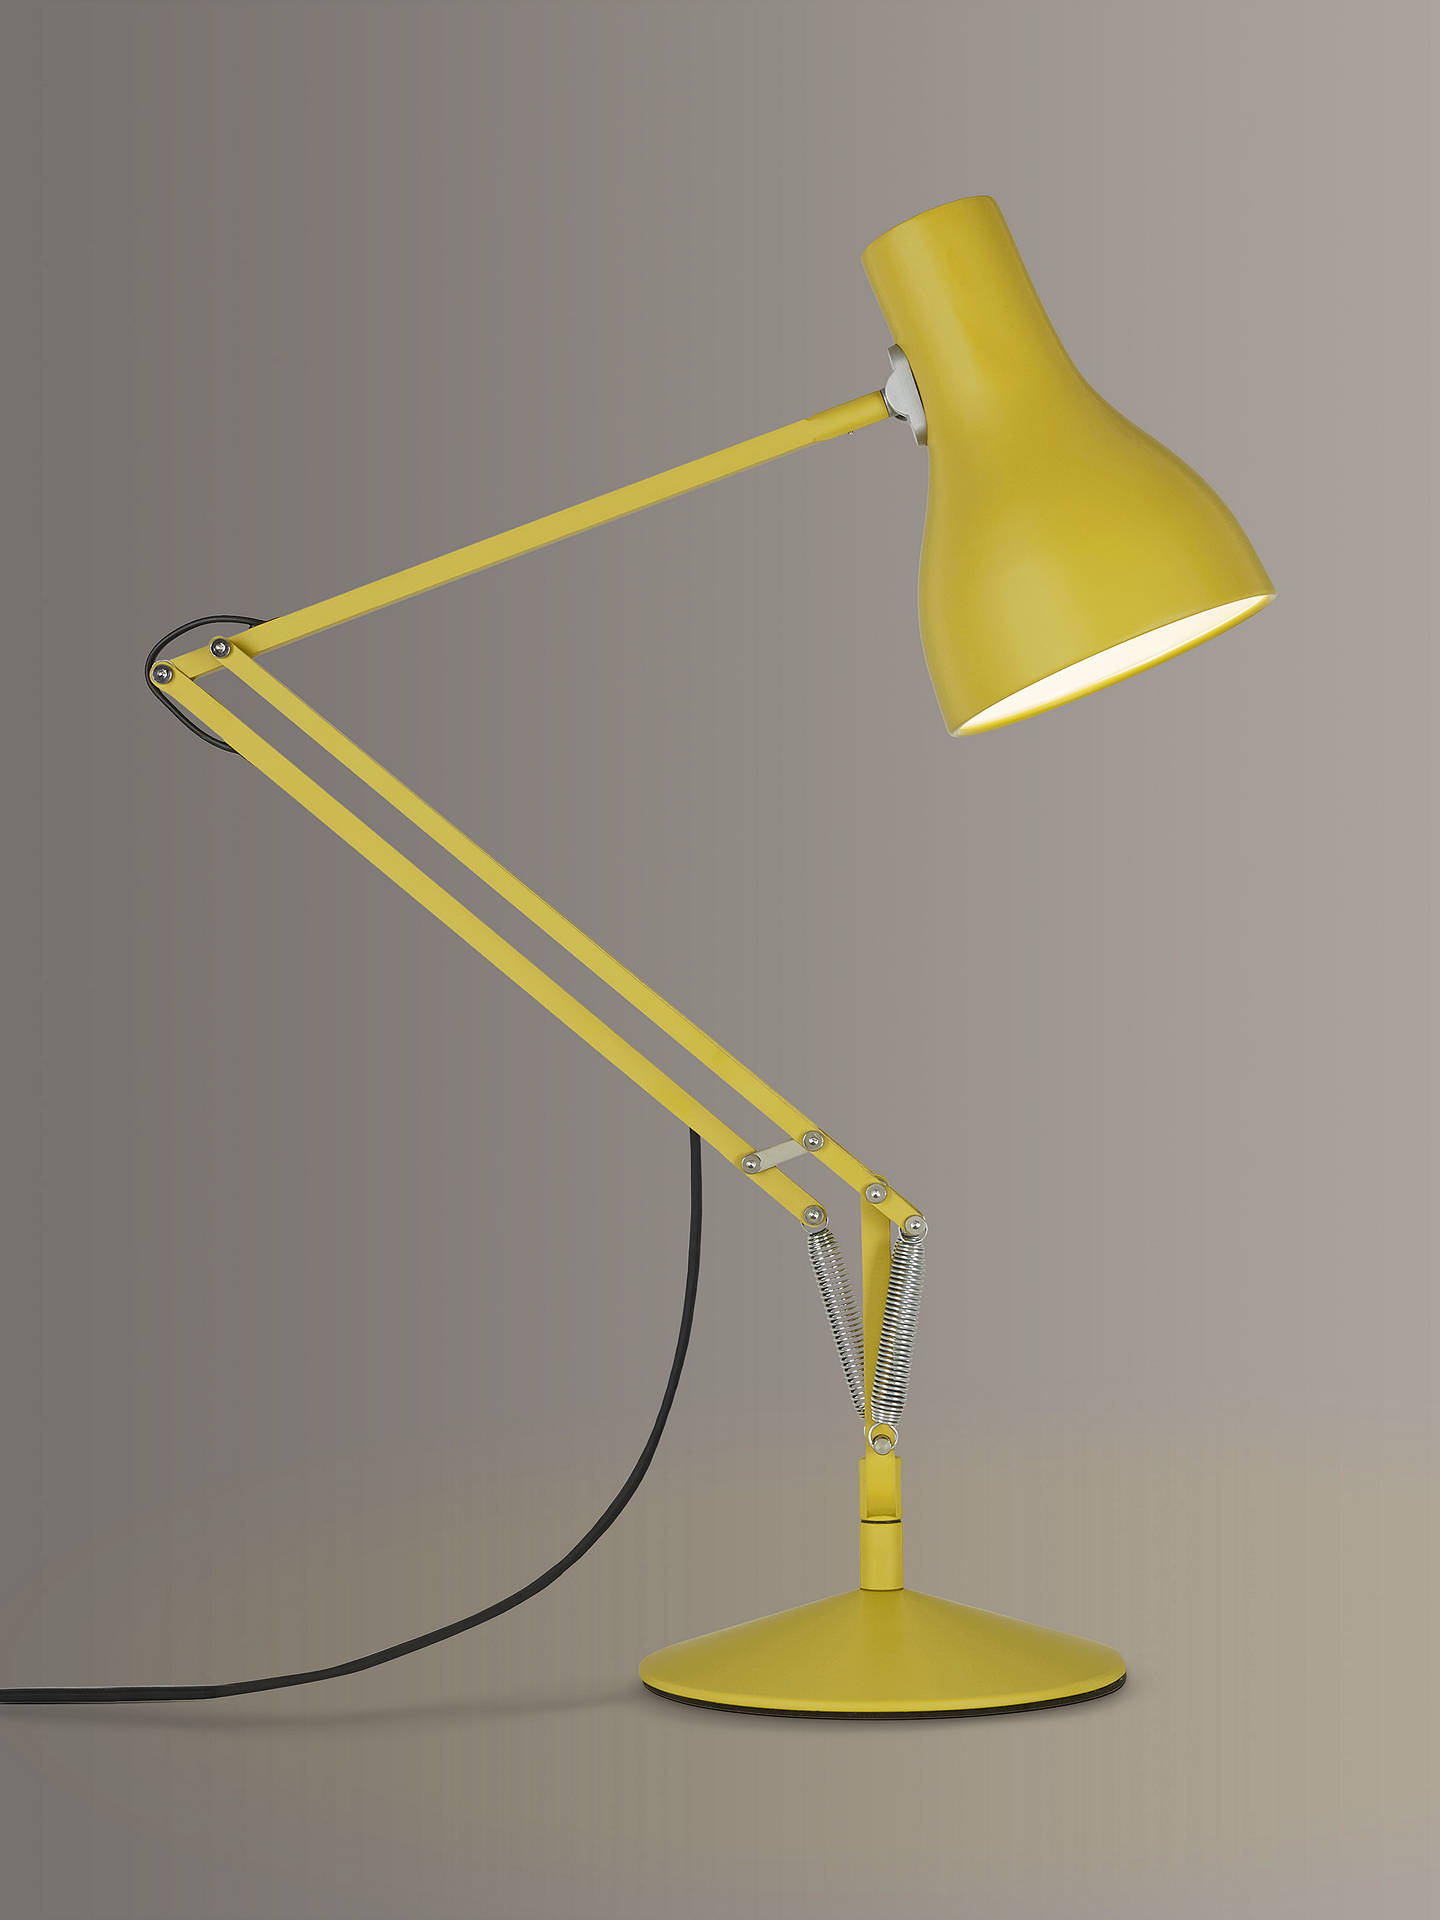 BuyAnglepoise Type 75 Margaret Howell Edition Desk Lamp, Yellow Ochre Online at johnlewis.com